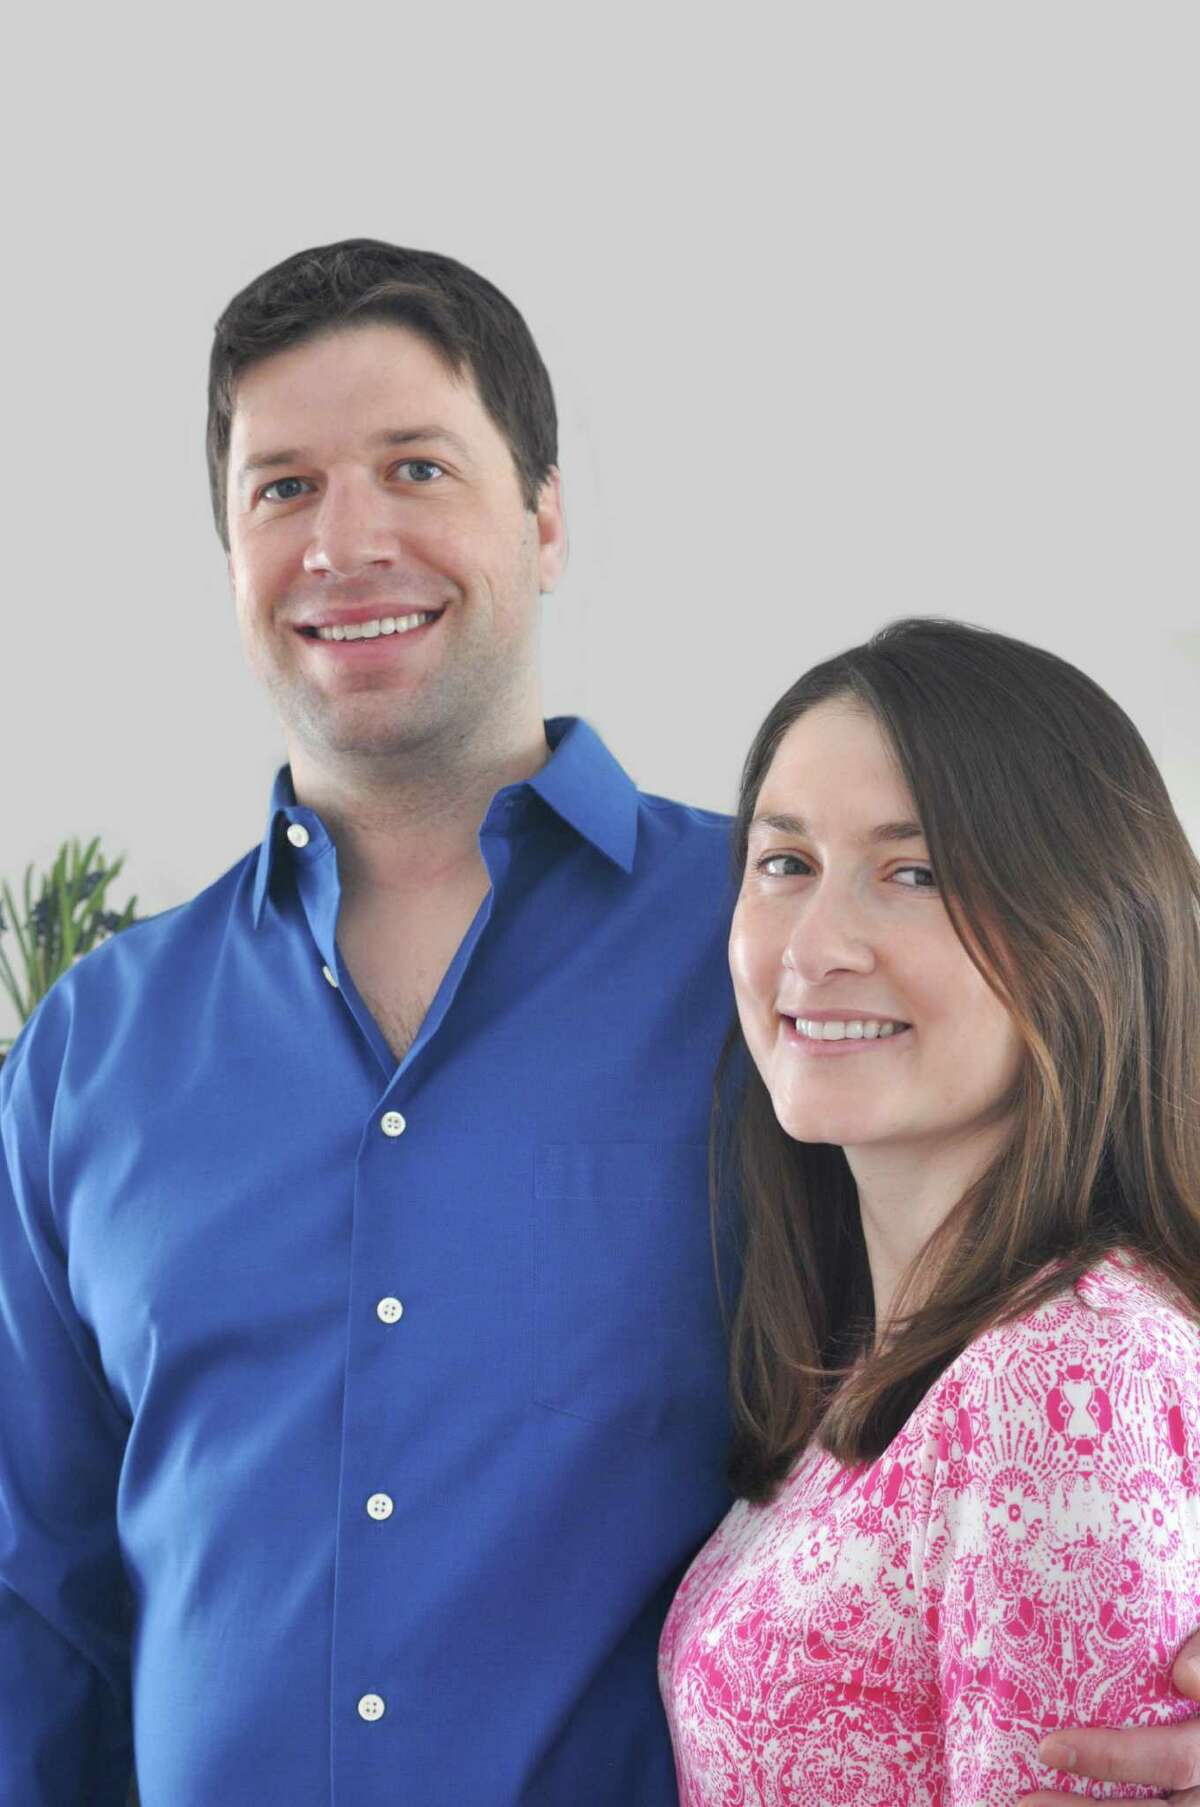 Ryan Burton Podskoch and Jenna Leigh Deluca. R. Reed and Beverly Deluca of Stamford announced the engagement of their daughter to Podskoch, son of Martin and Lynn Podskoch of East Hampton, CT.